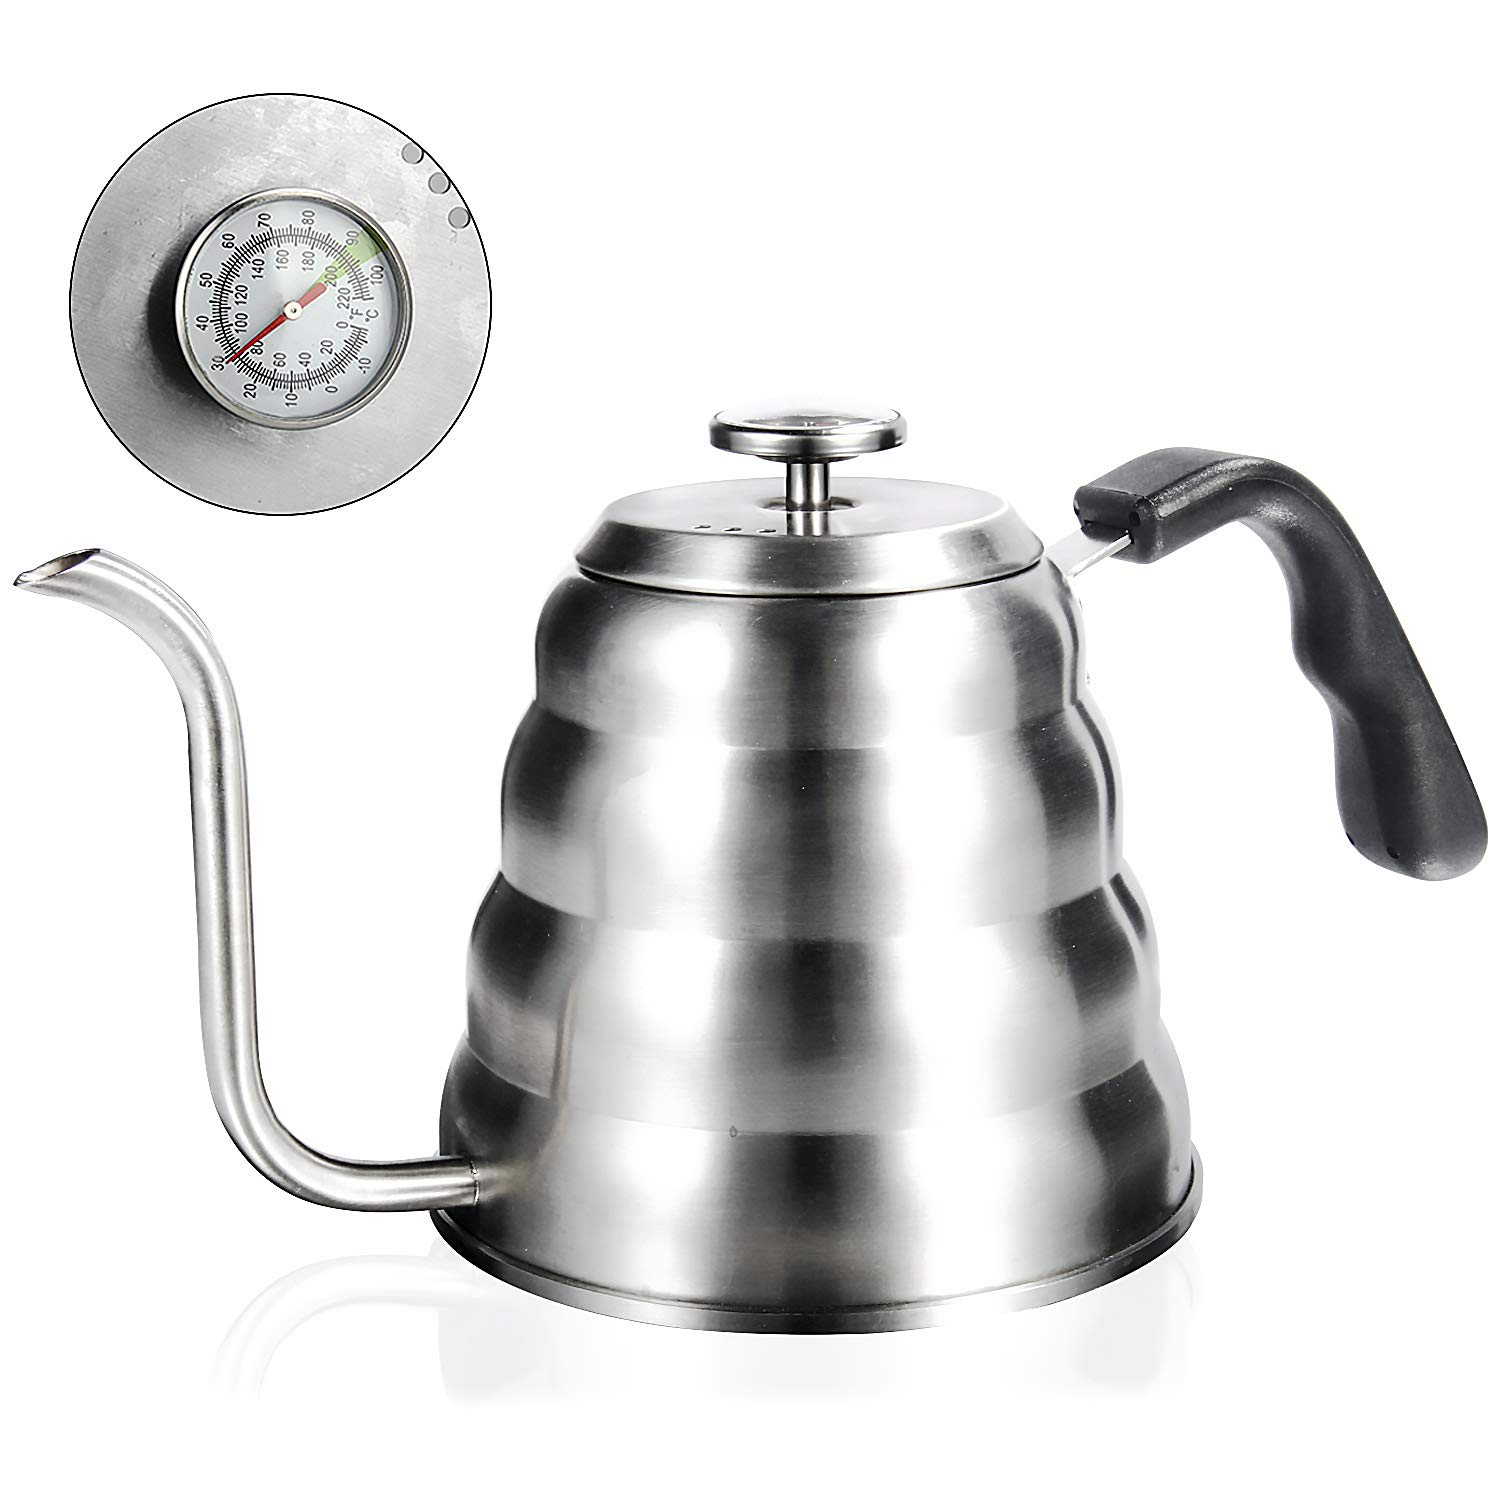 Pour Over Kettle, OAMCEG 40fl oz/1.2L Stainless Steel Gooseneck Pour Over Coffee Kettle with Thermometer for Exact Temperature - Insulated BPA Free Plastic Ergonomic Handle by OAMCEG